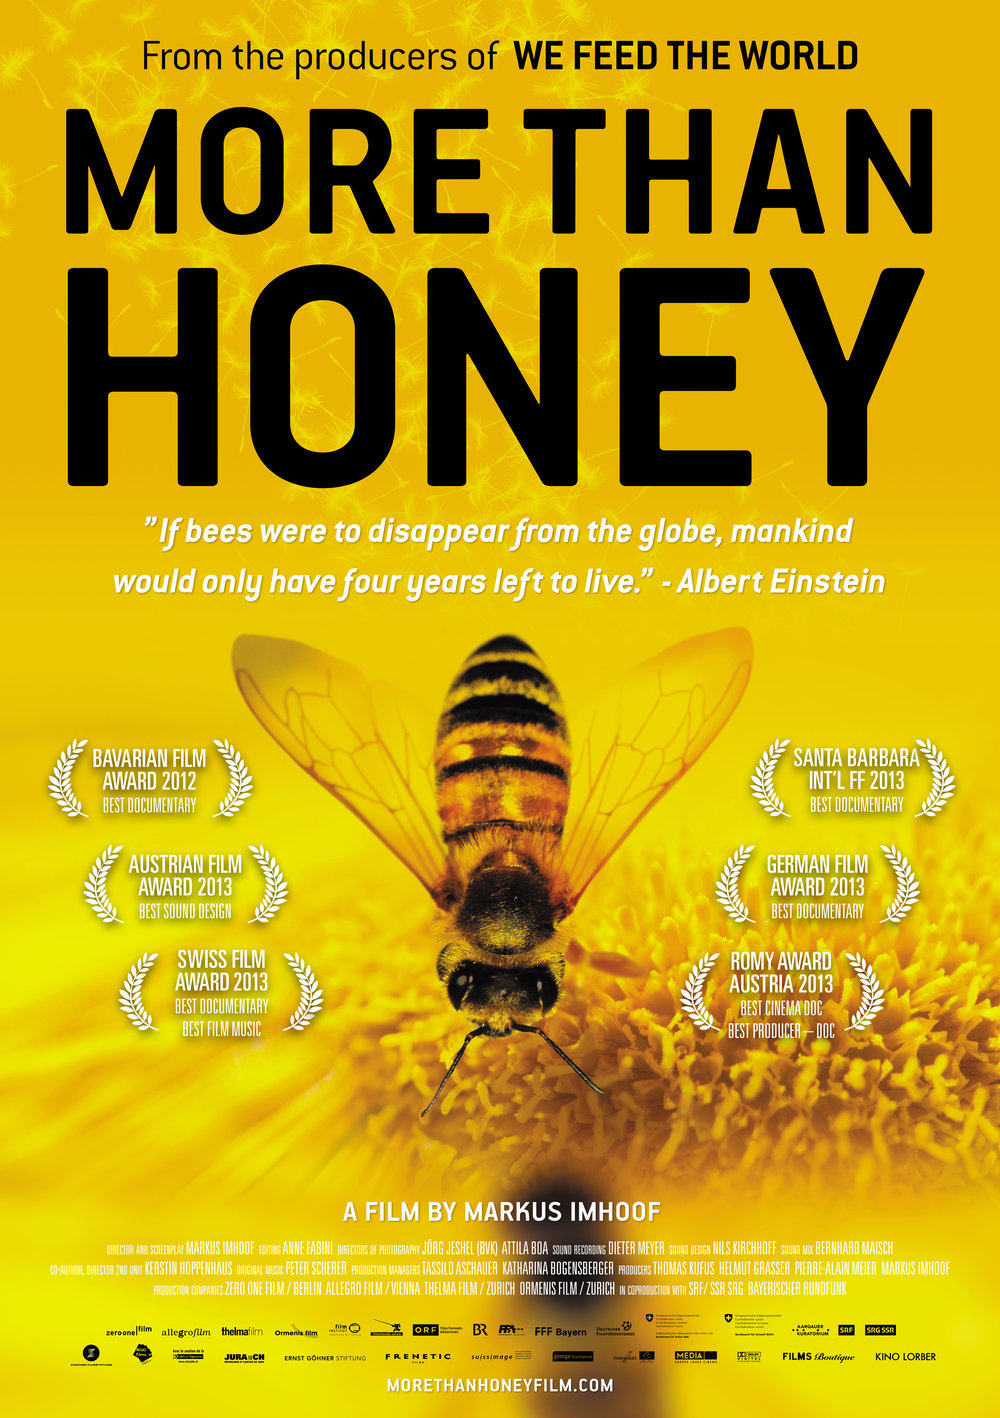 More Than Honey movie poster - 2538 x 3600.jpg